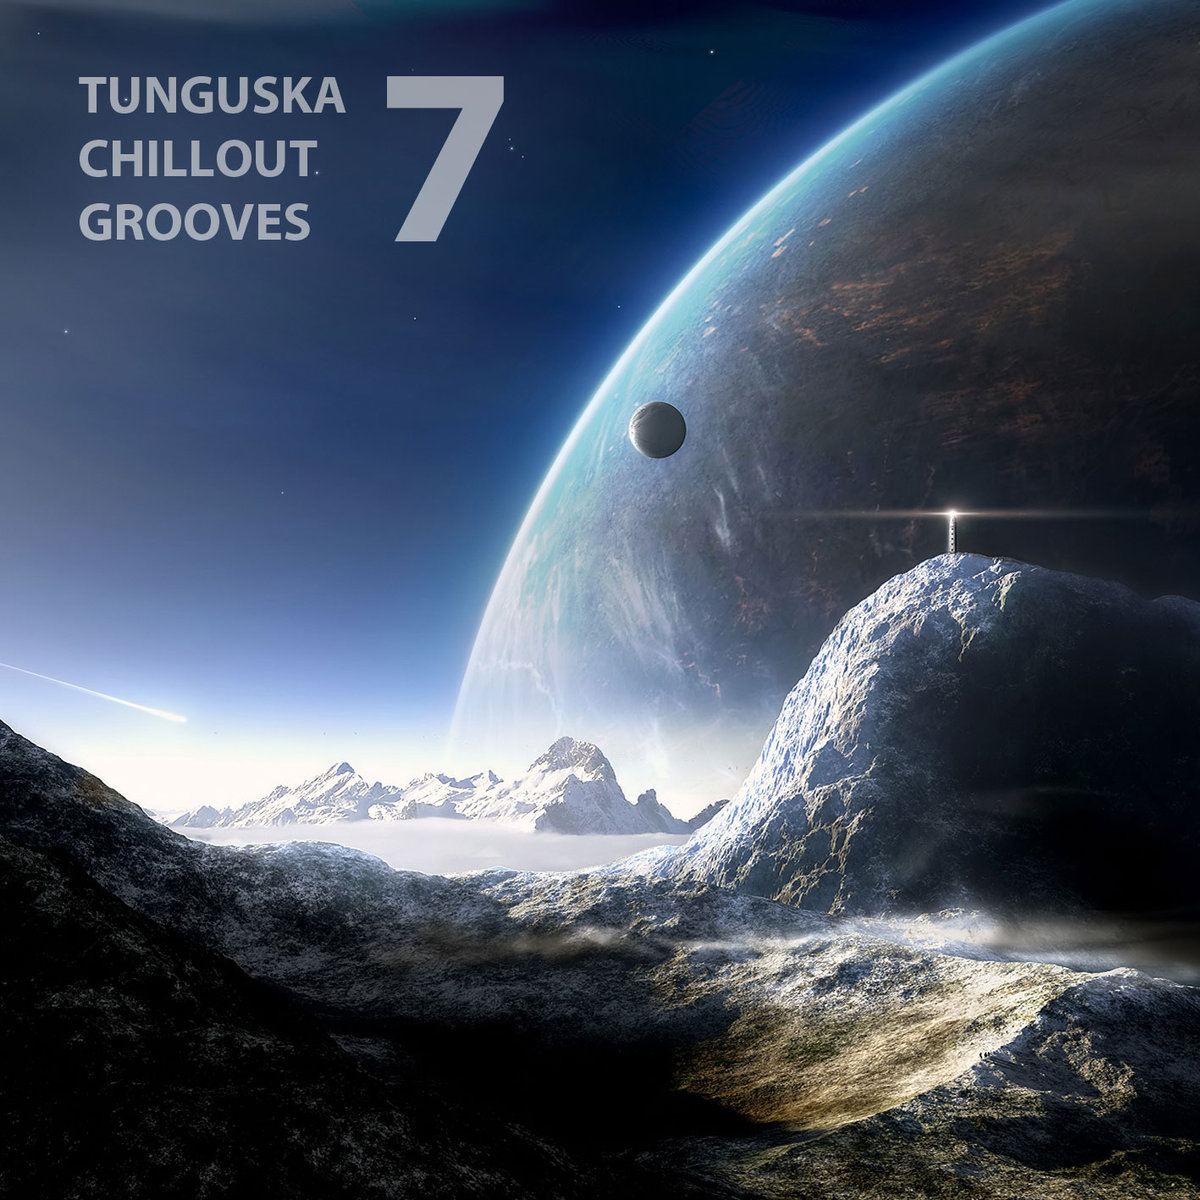 Kachkin - People Need People @ 'Tunguska Chillout Grooves - Volume 7' album (electronic, ambient)